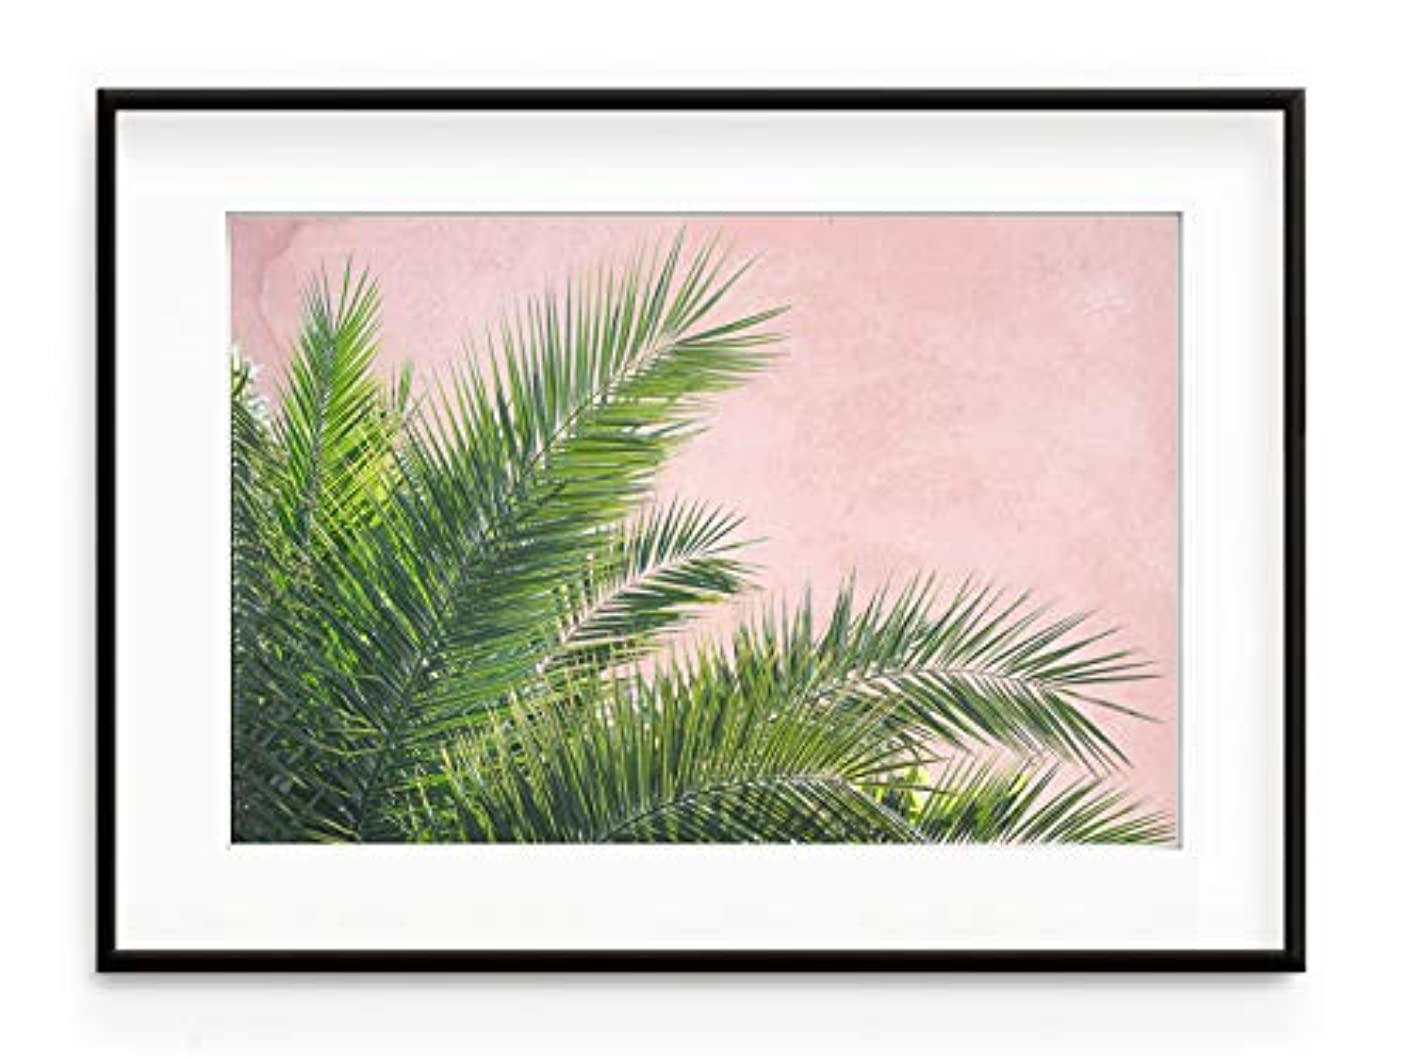 Plant on Pink Fins - Black Satin Aluminium Frame with Mount, Multicolored, 70x100